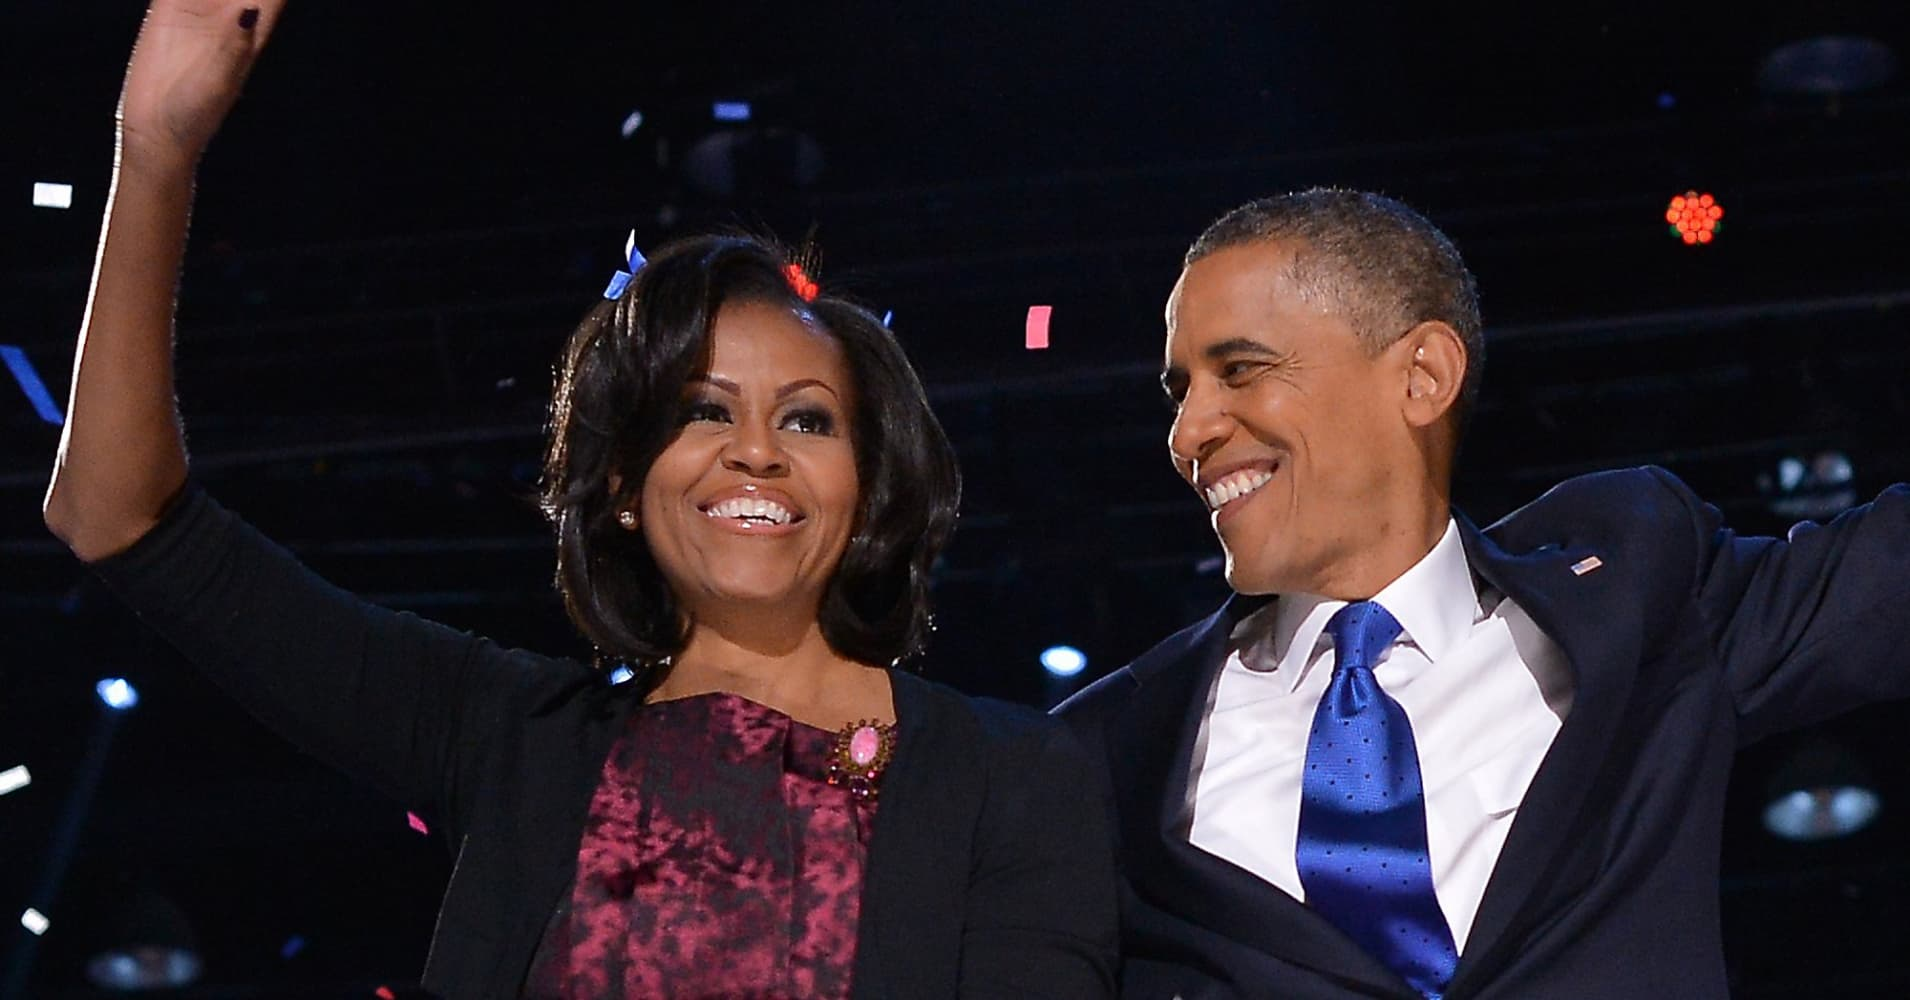 Reed Hastings is bringing the Obamas to Netflix—here's the strategy that helped him grow a billion-dollar business